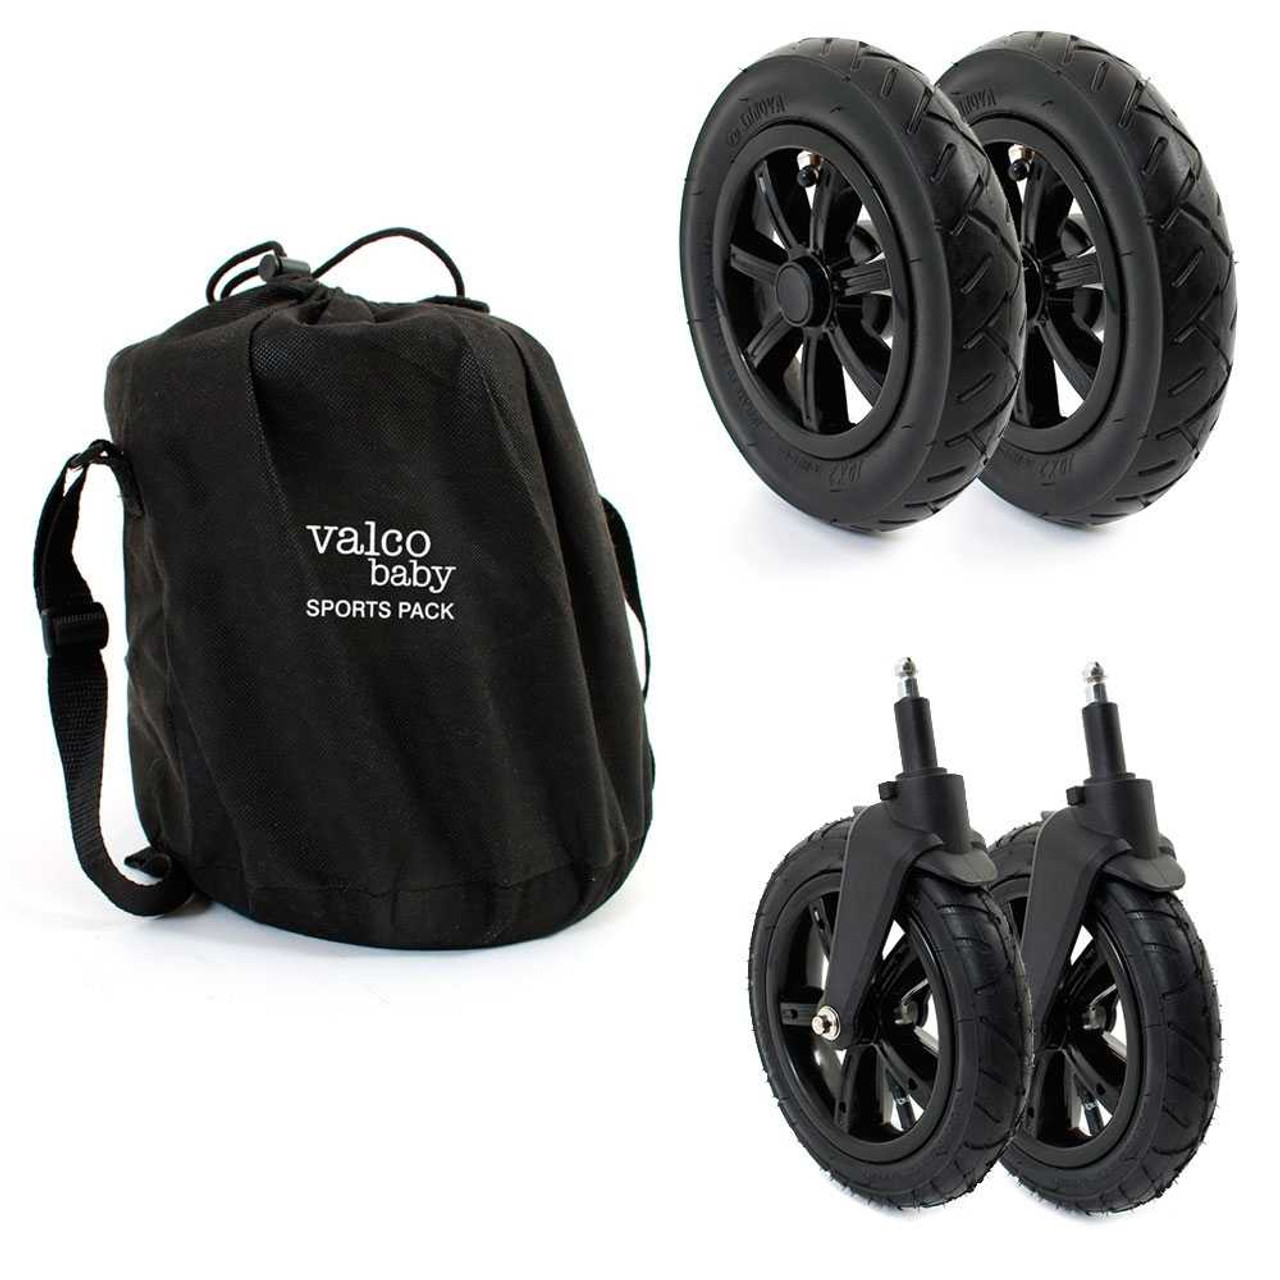 Valco Sports Pack Wheels *Suits Snap 4, Snap Duo and Snap Ultra* Pram Accessories 139.95